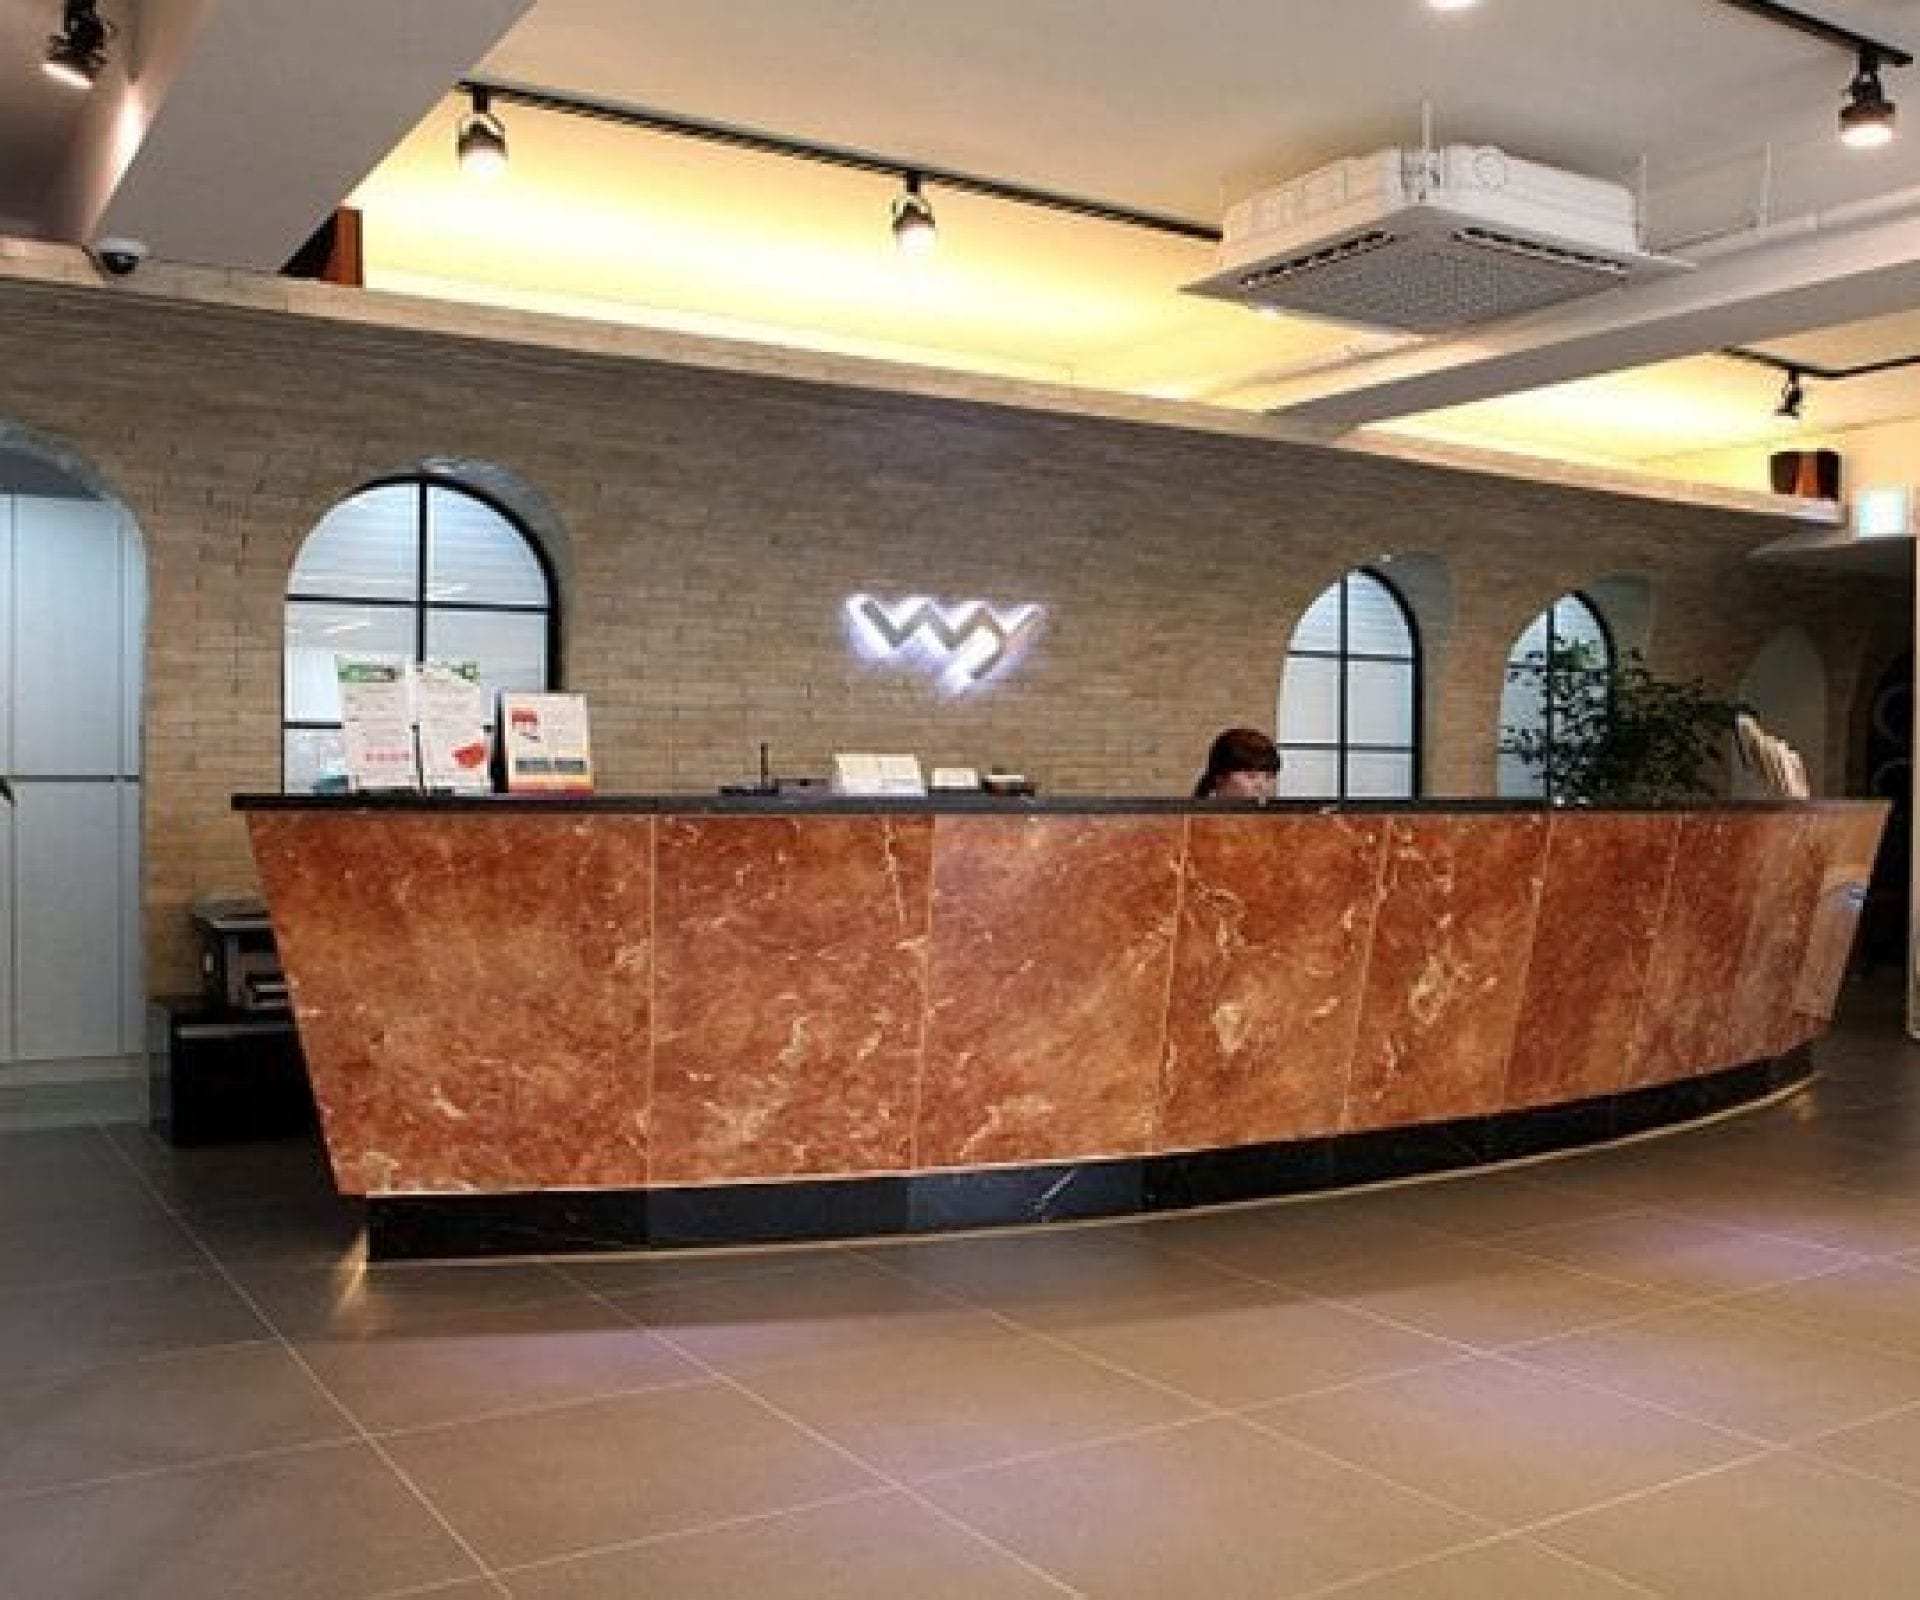 WY Dental Clinic | Gangnam-gu, Seoul